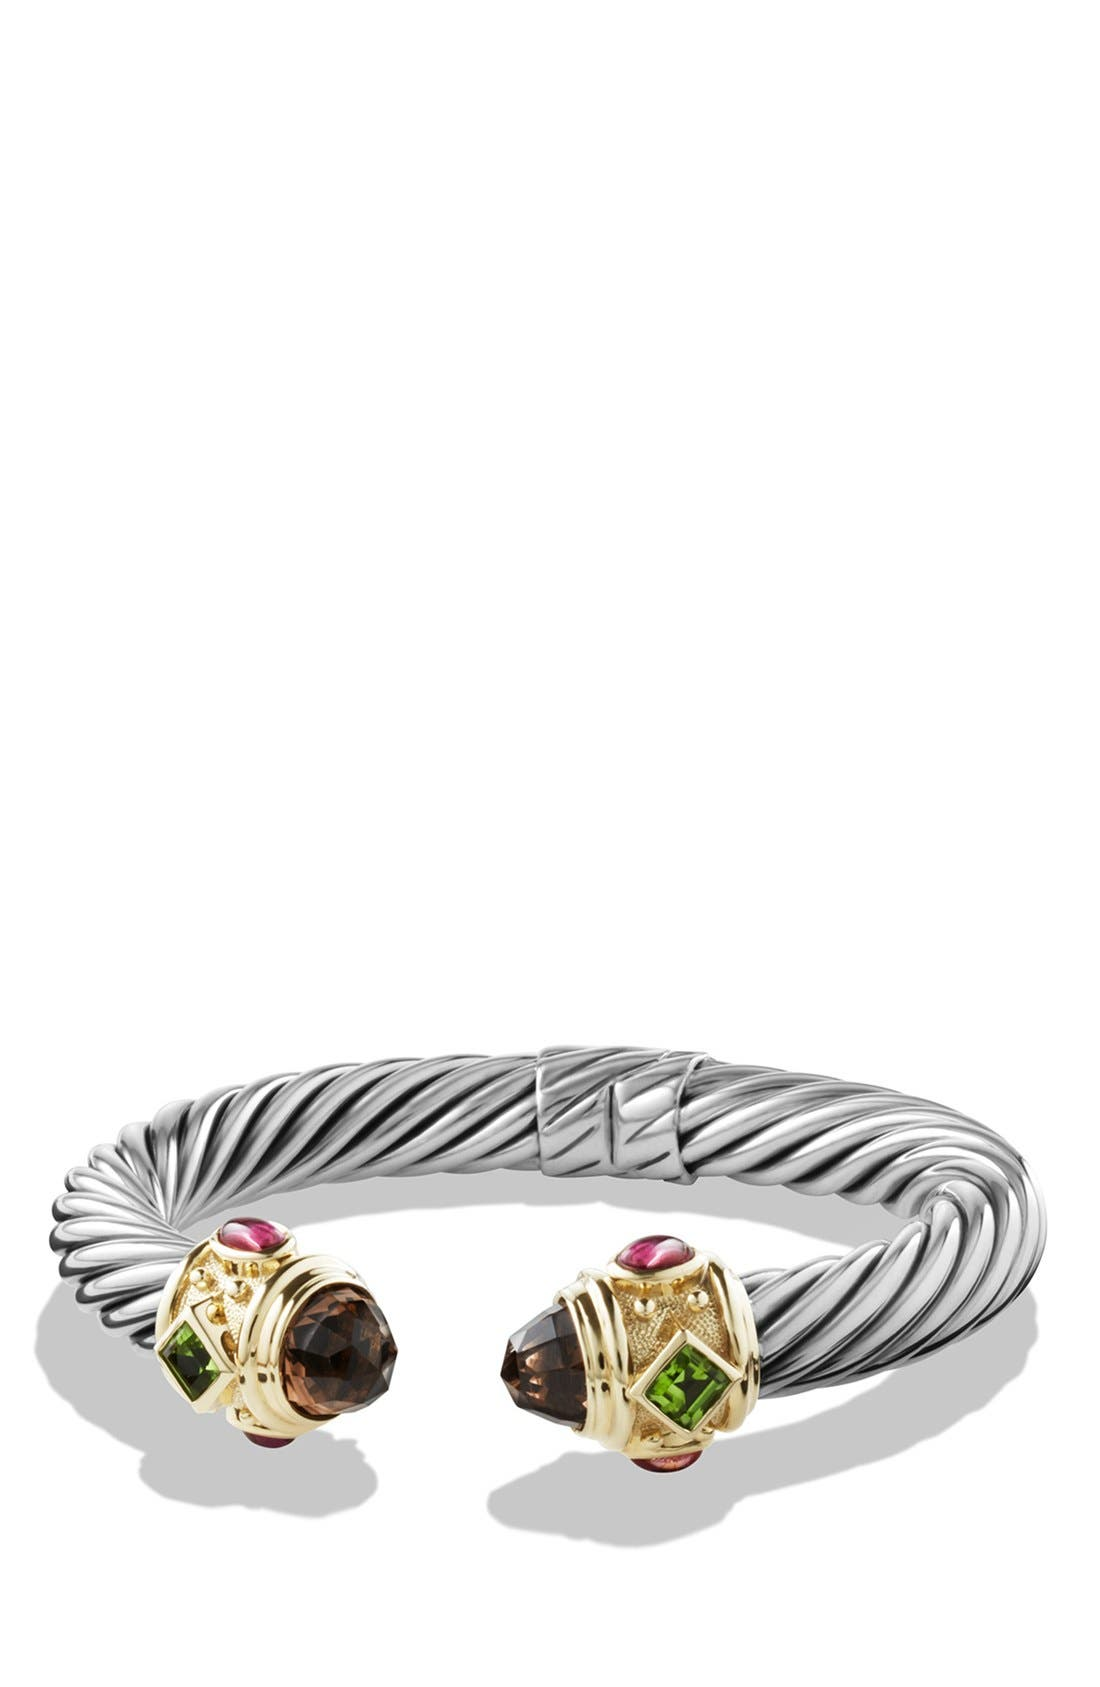 David Yurman 'Renaissance' Bracelet with Semiprecious Stones & Gold